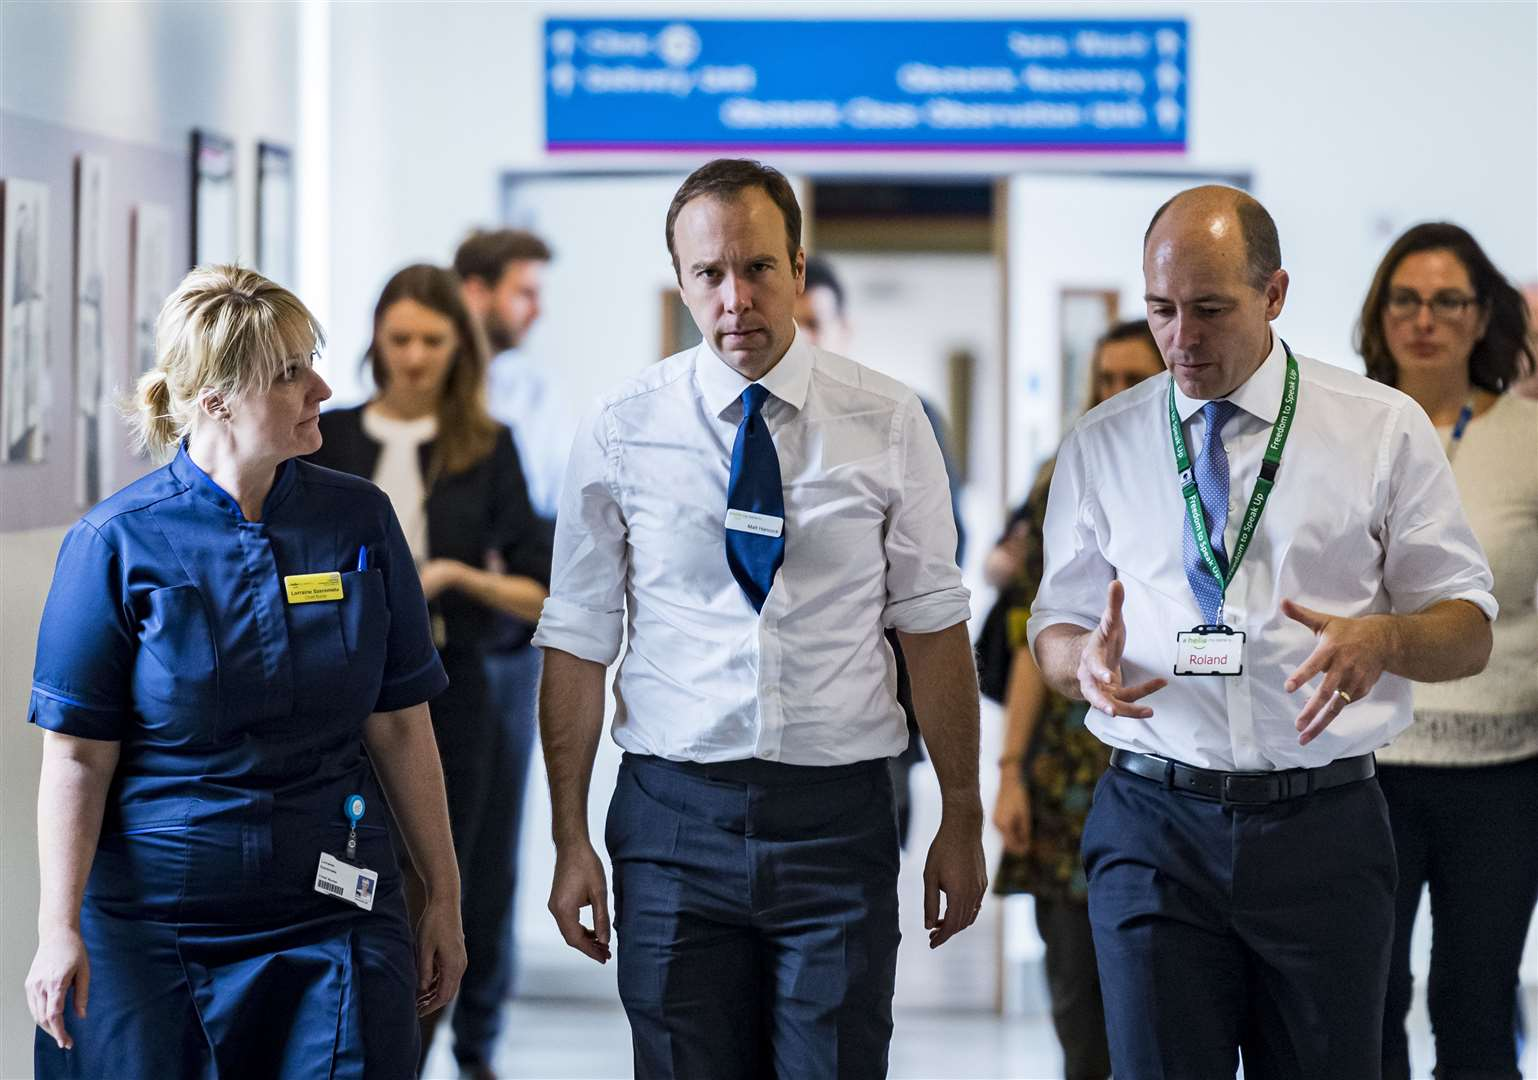 From left, chief nurse Lorraine Szeremeta, health secretary Matt Hancock, and Cambridge University Hospitals chief executive Roland Sinker. Picture: Keith Heppell